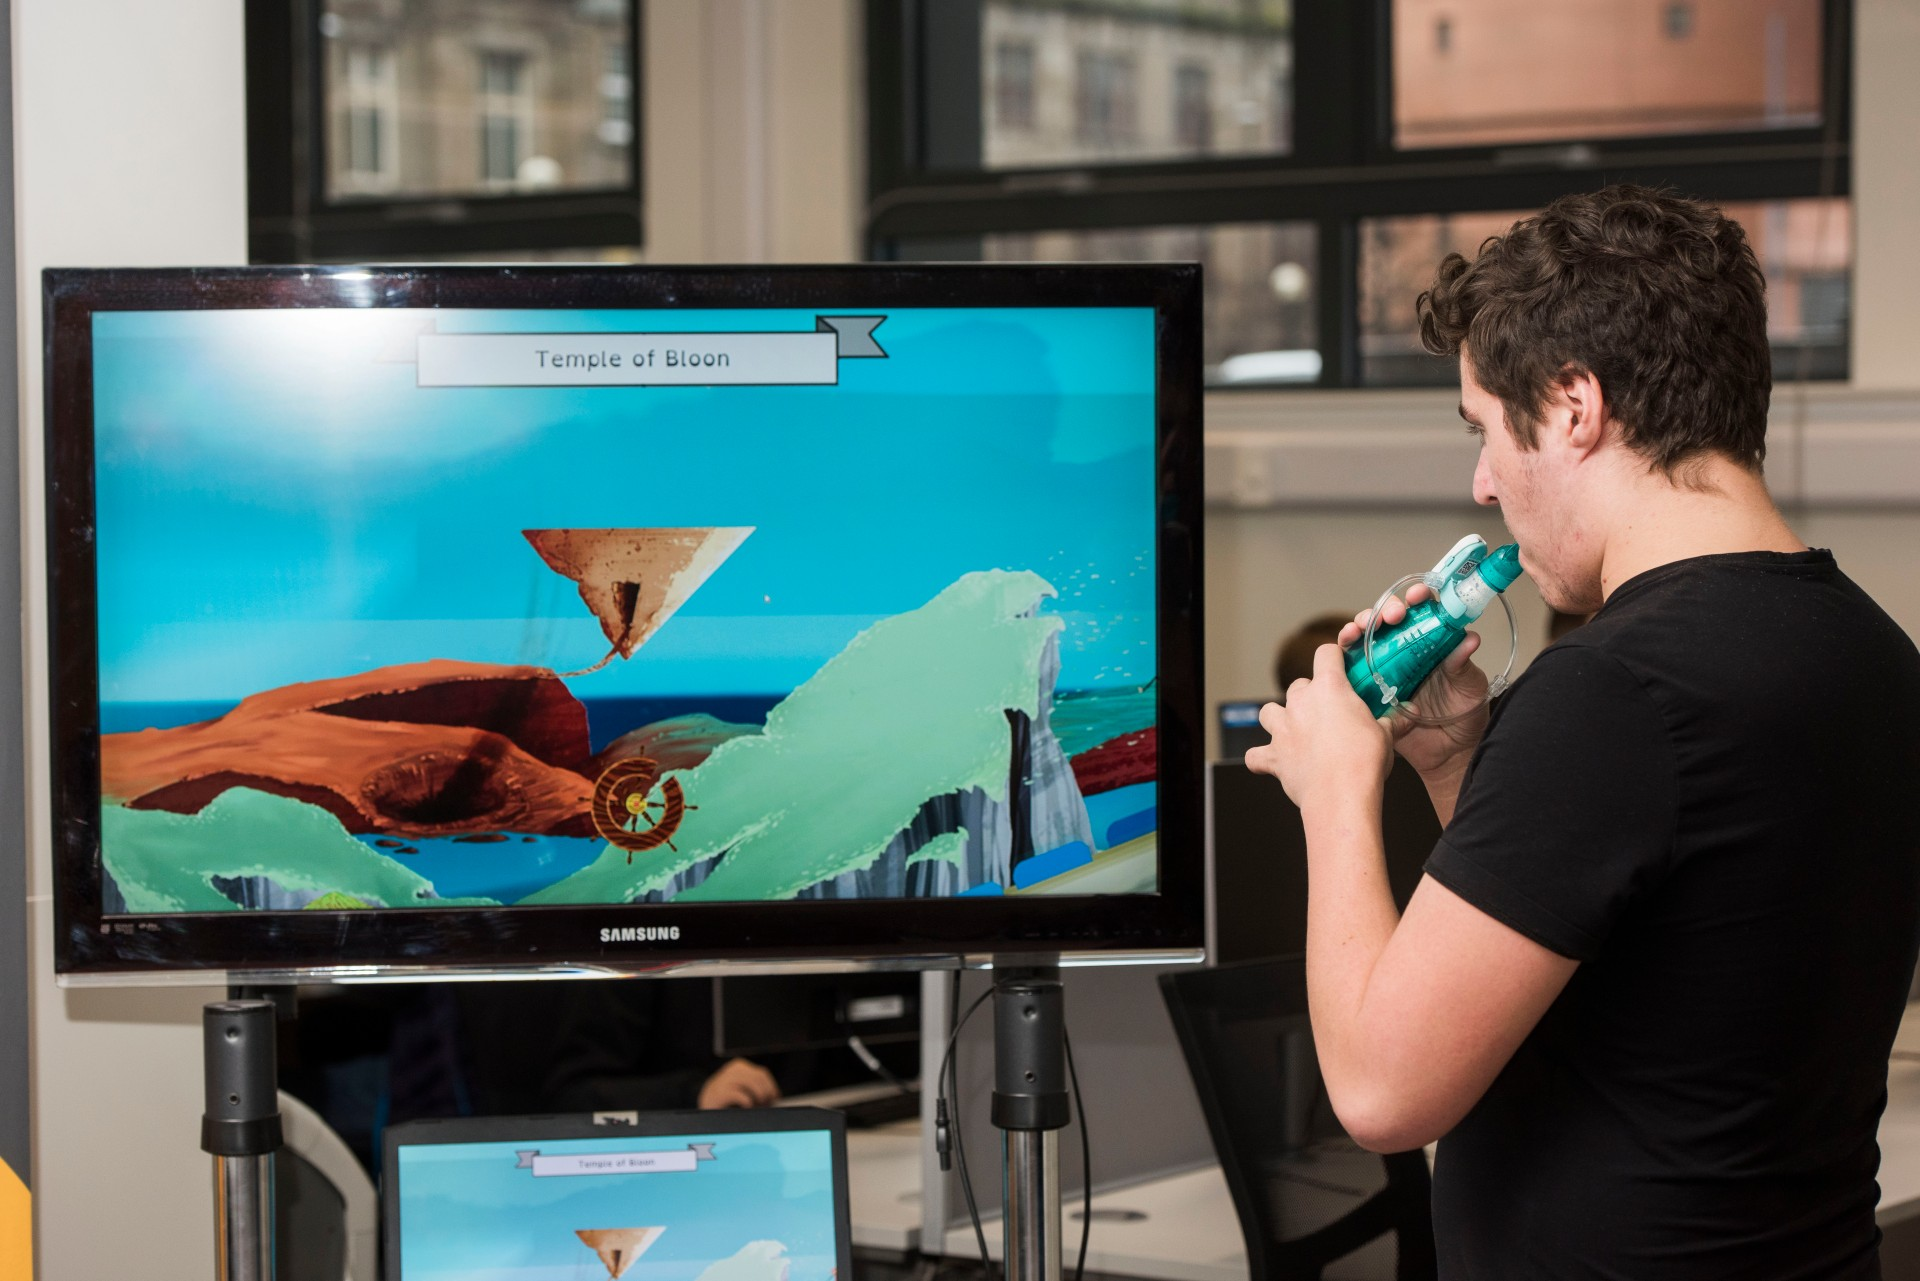 Ground-breaking videogame for cystic fibrosis patients tested at Great Ormond Street Hospital